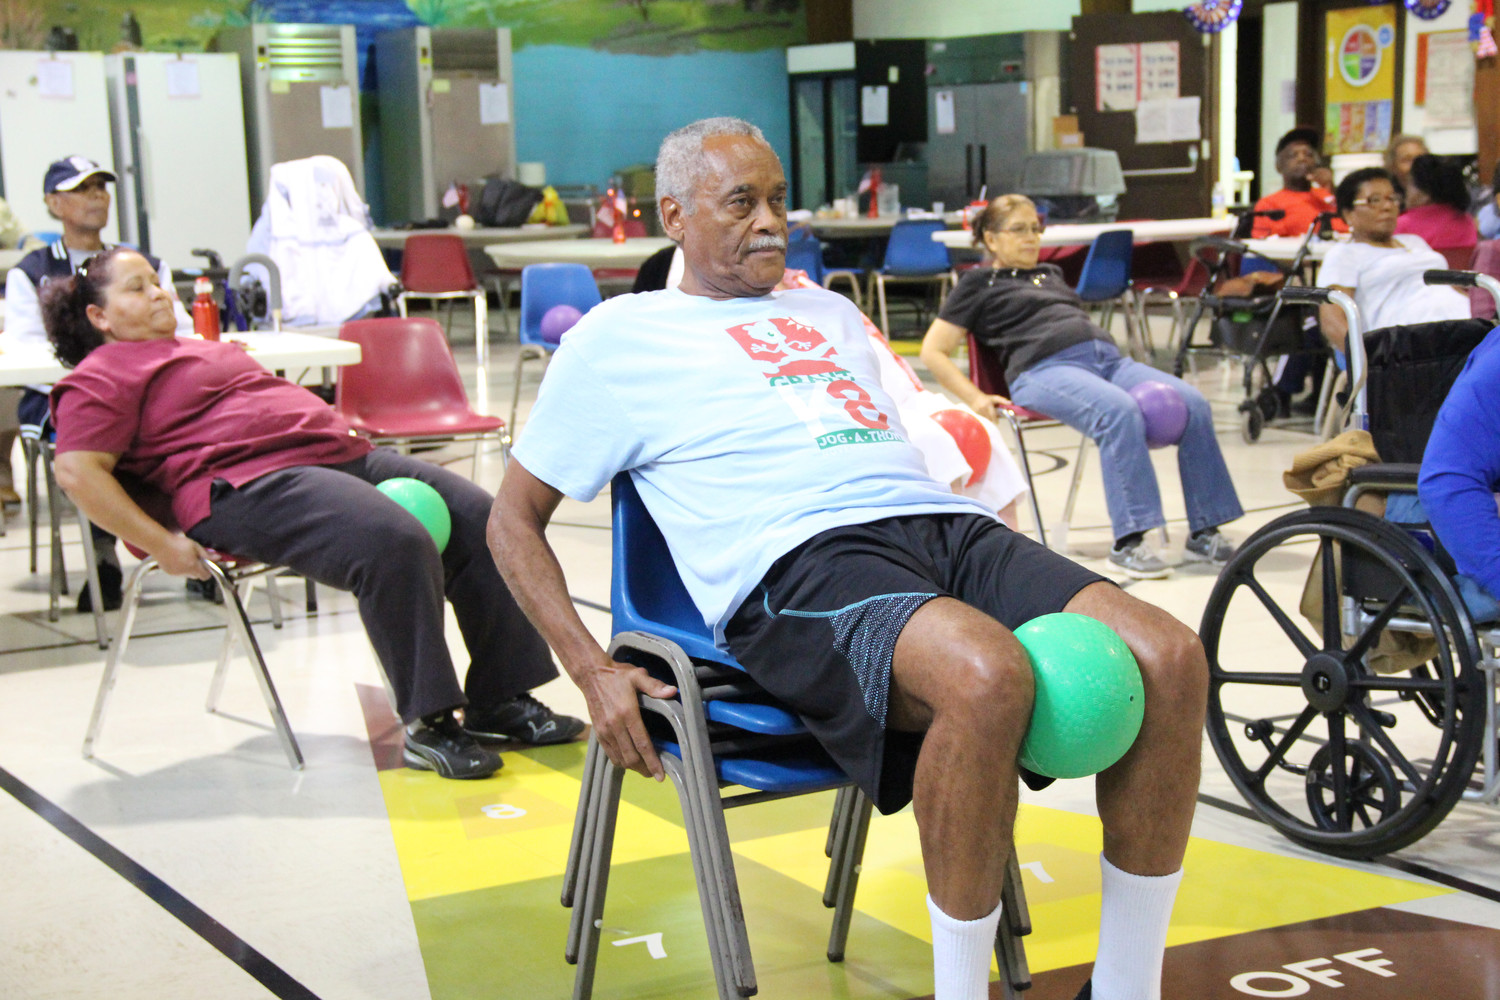 Freeport Salvation Army Senior Center participant, Danver Campbell, 70, participated in the morning exercise class.